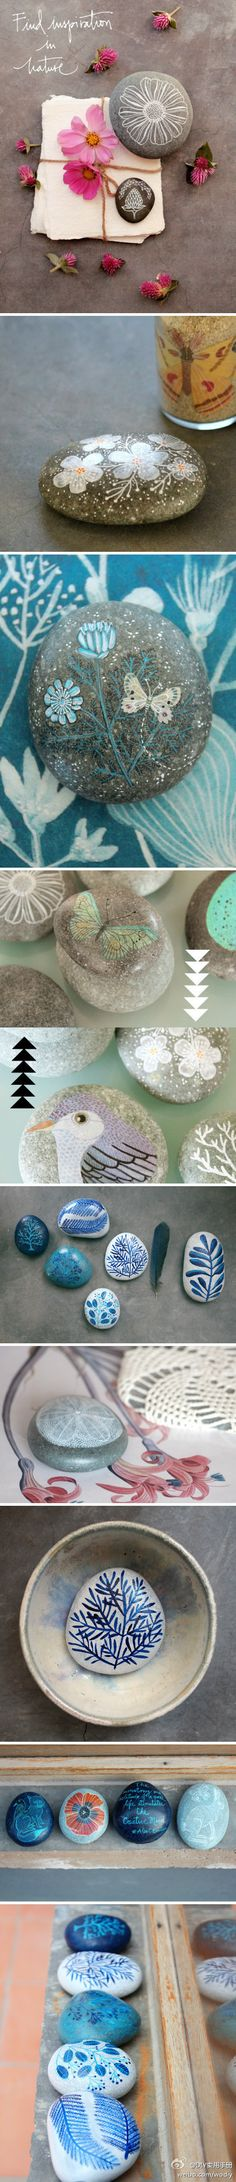 Painted rocks--nature inspired designs